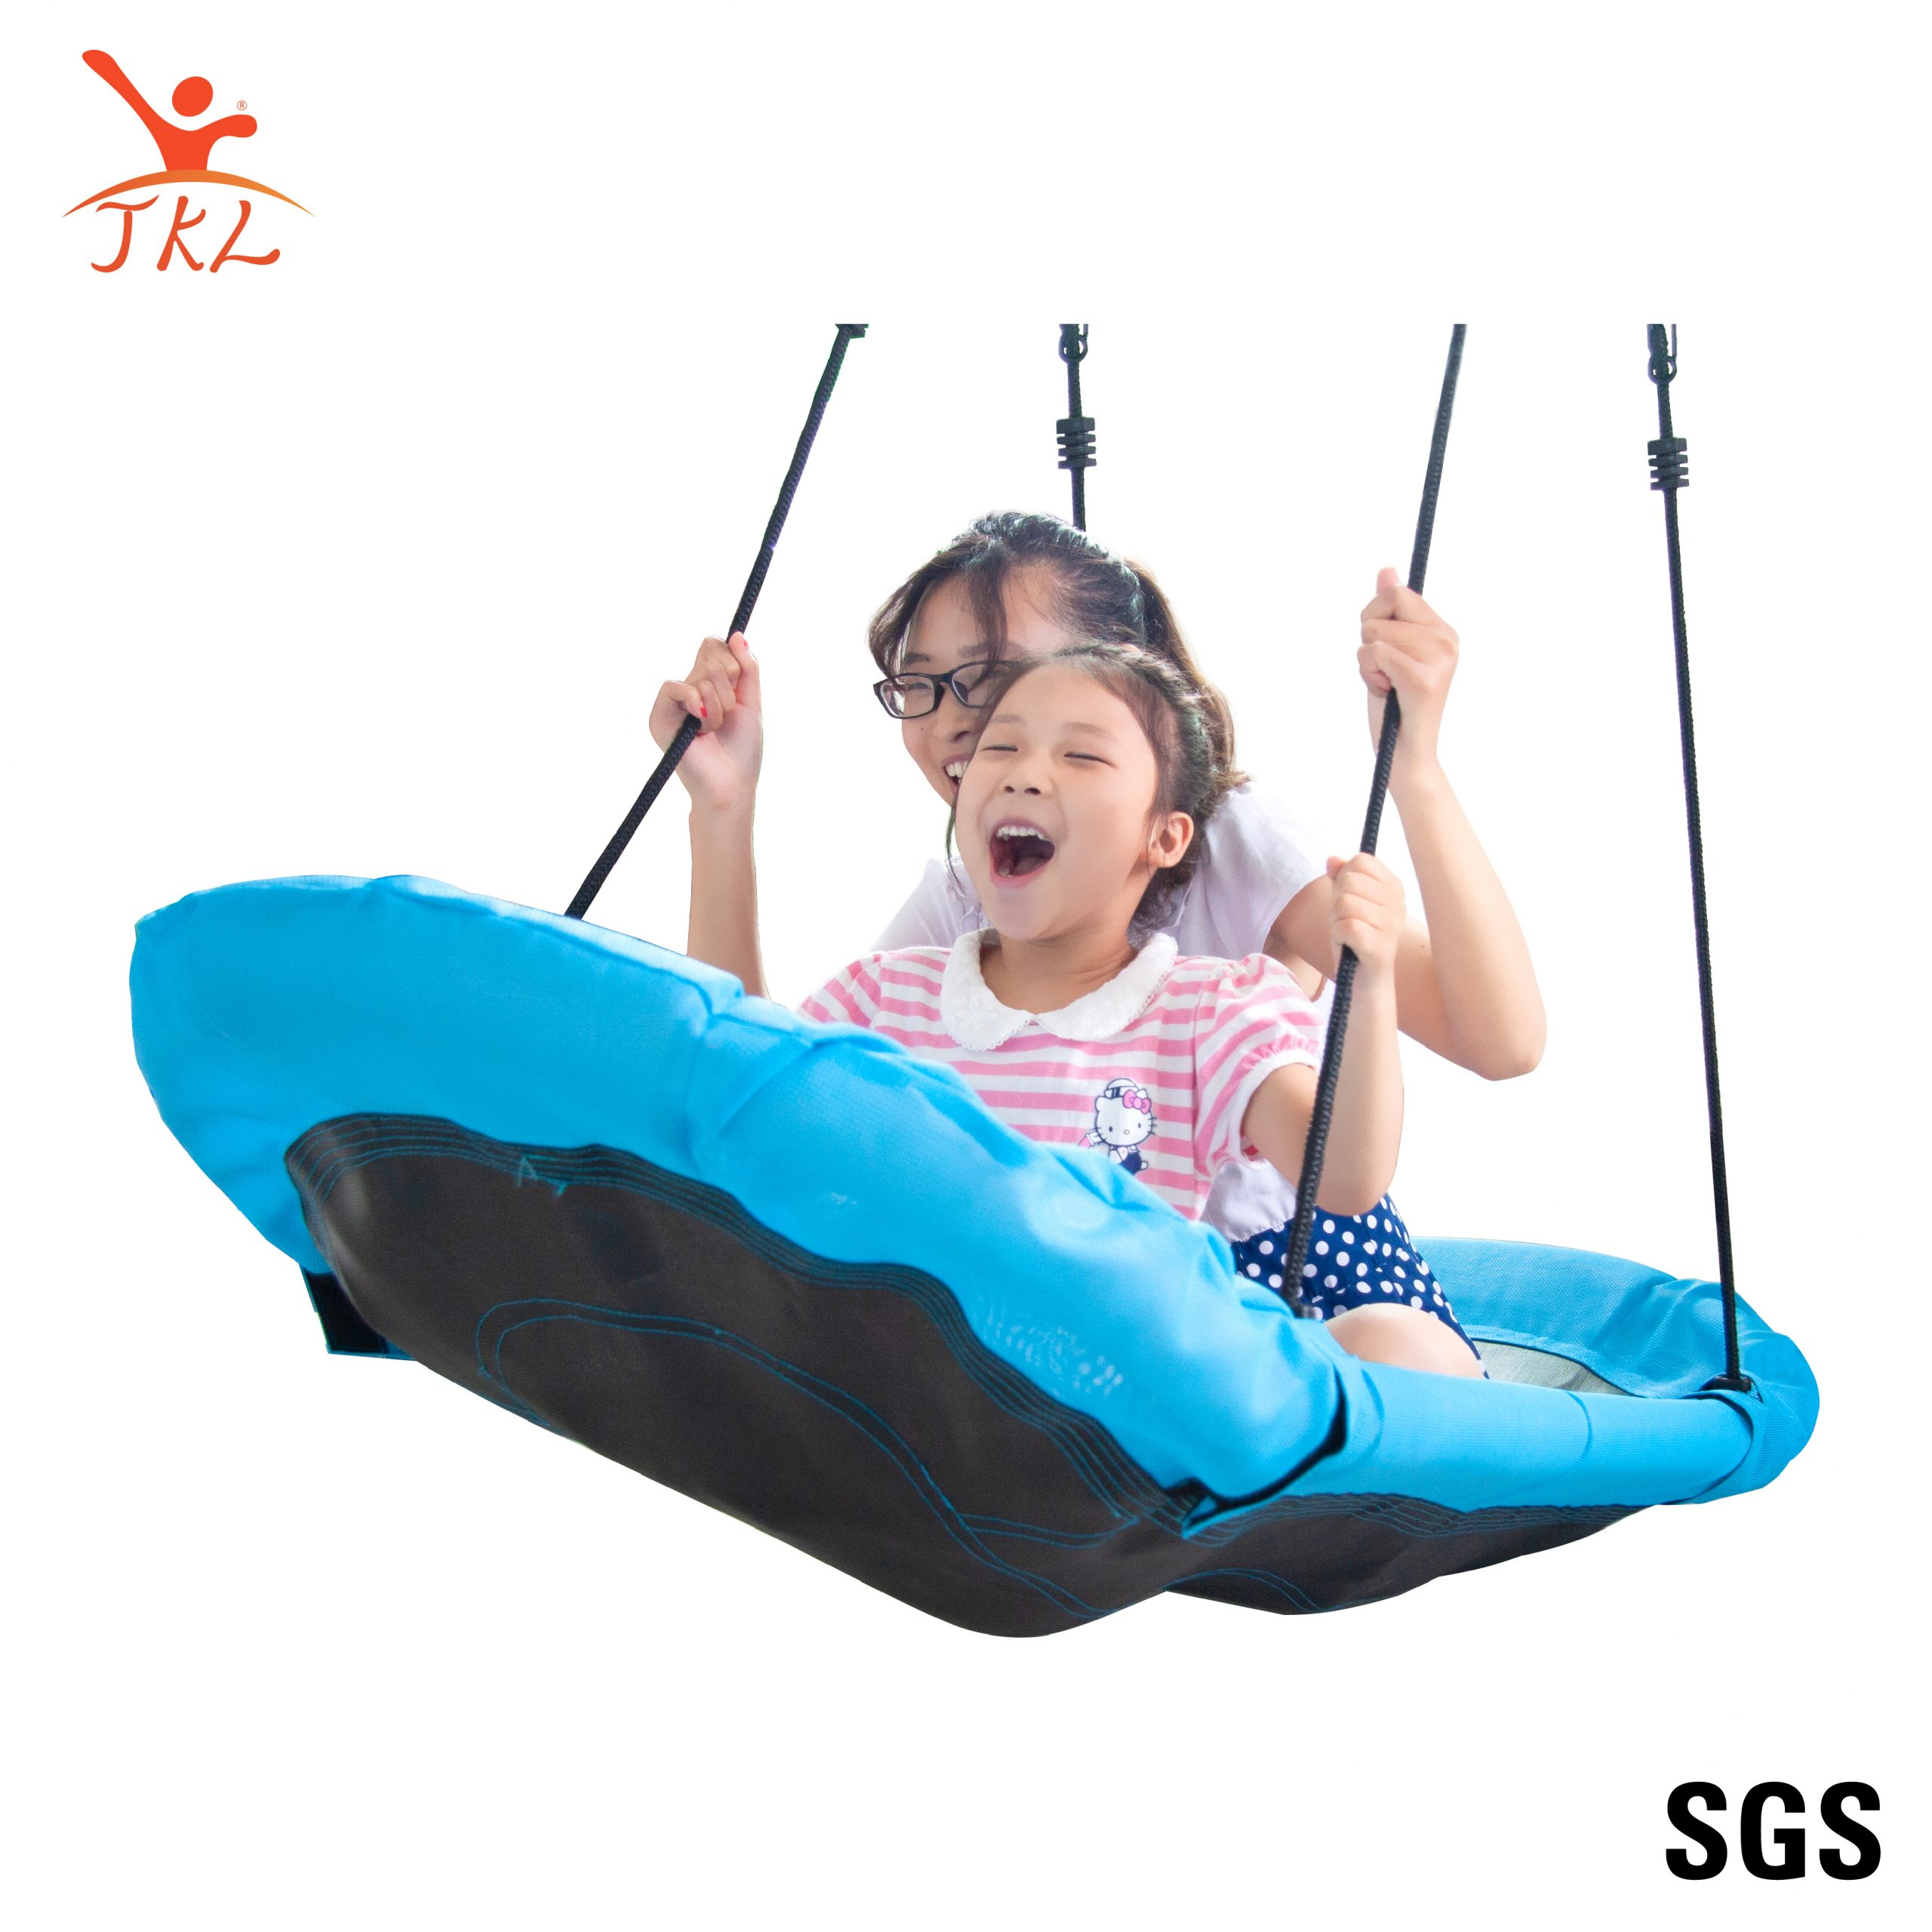 New Ship Shape 167Cmx70Cm Nest Swing With Pe Swing Rope Pertaining To Nest Swings With Adjustable Ropes (View 24 of 25)